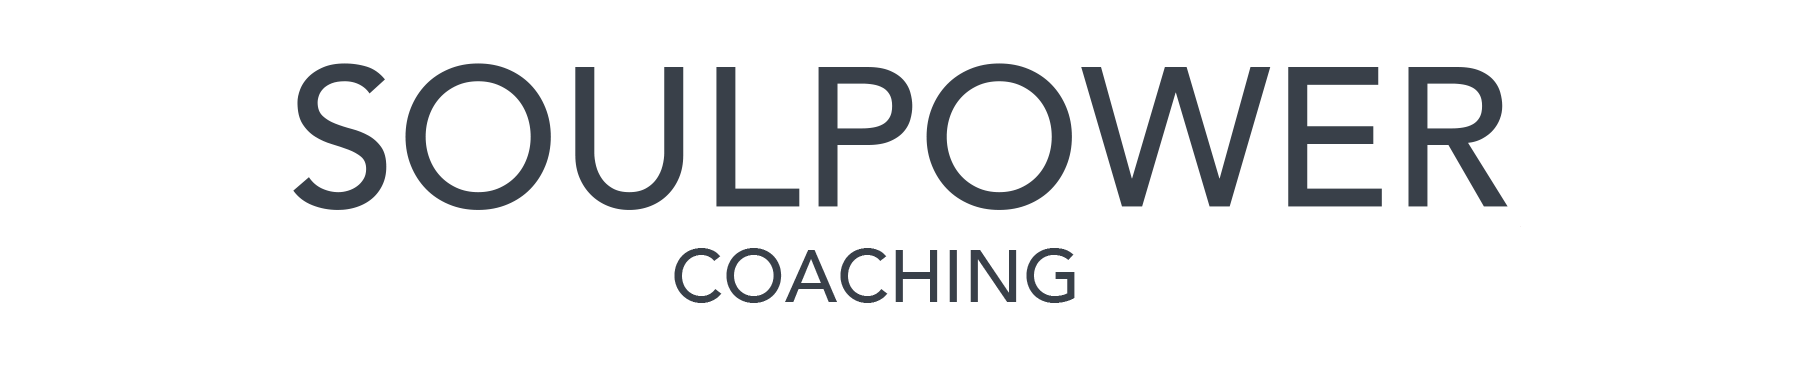 Soulpower Coaching